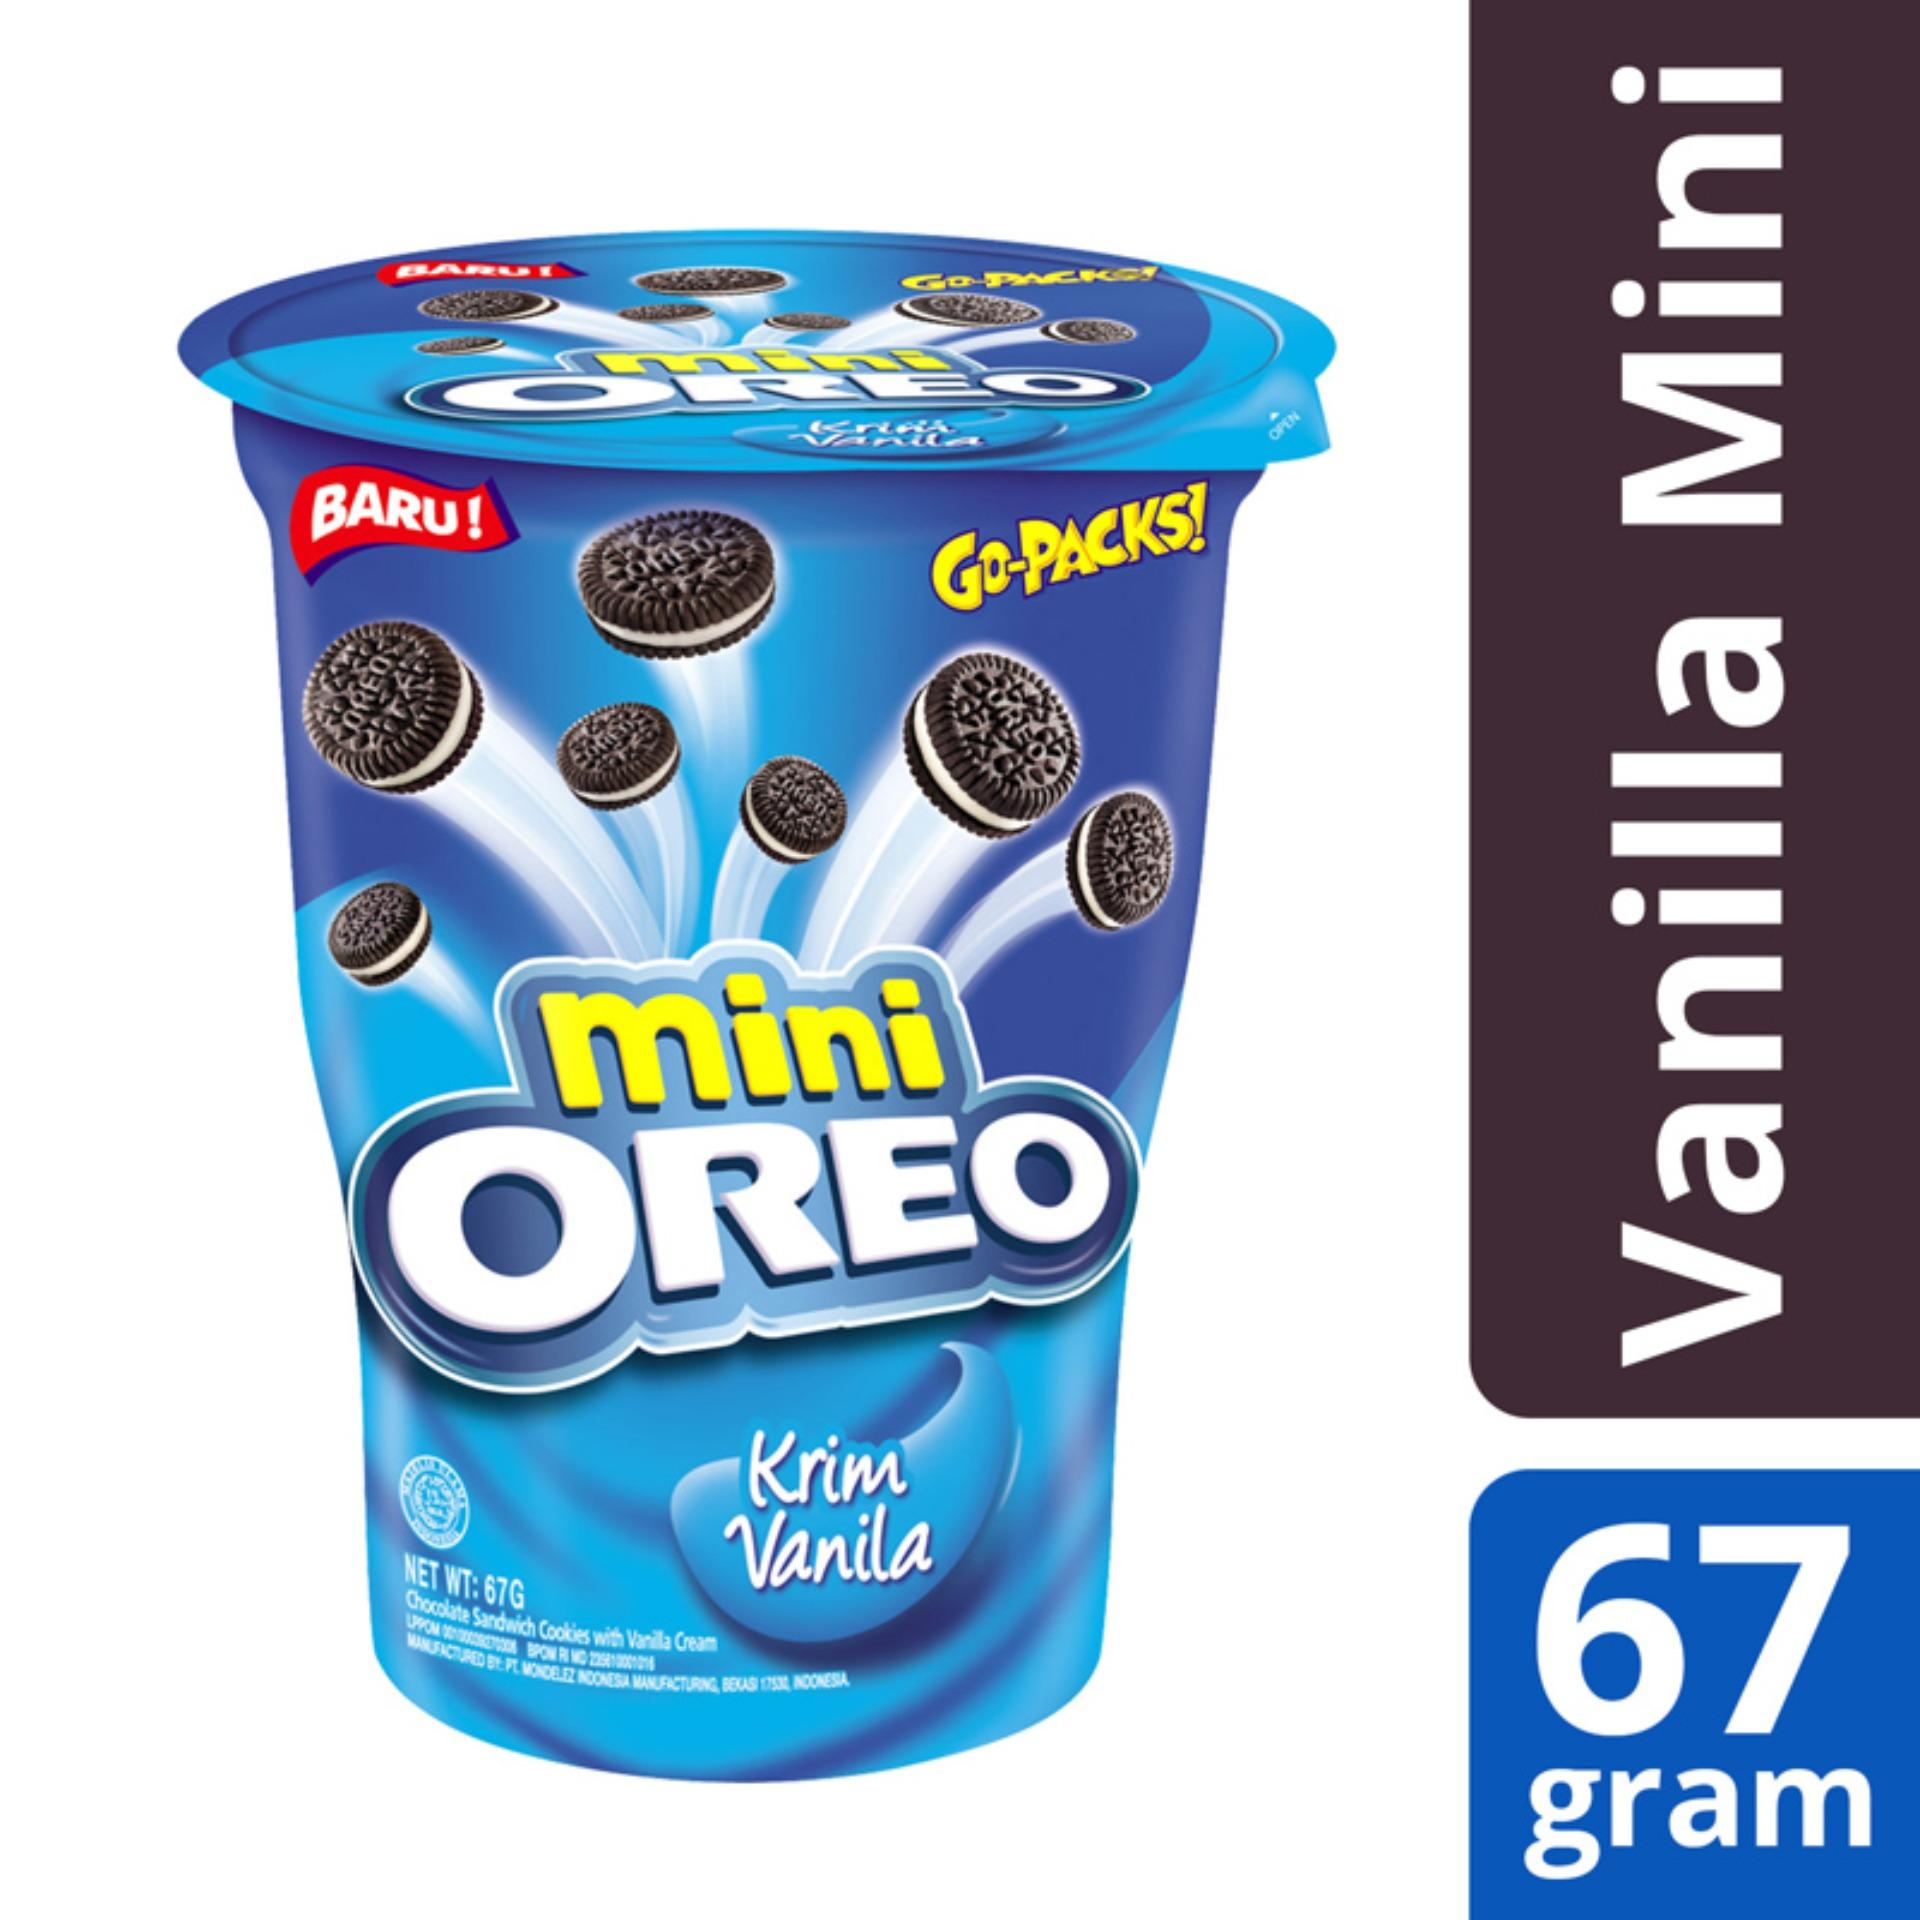 oreo promotion and price analysis Retailers and manufacturers have come to rely on price promotions, routinely using coupons, two-for-one offers, and temporary price cuts to lure customers into stores and boost sales.